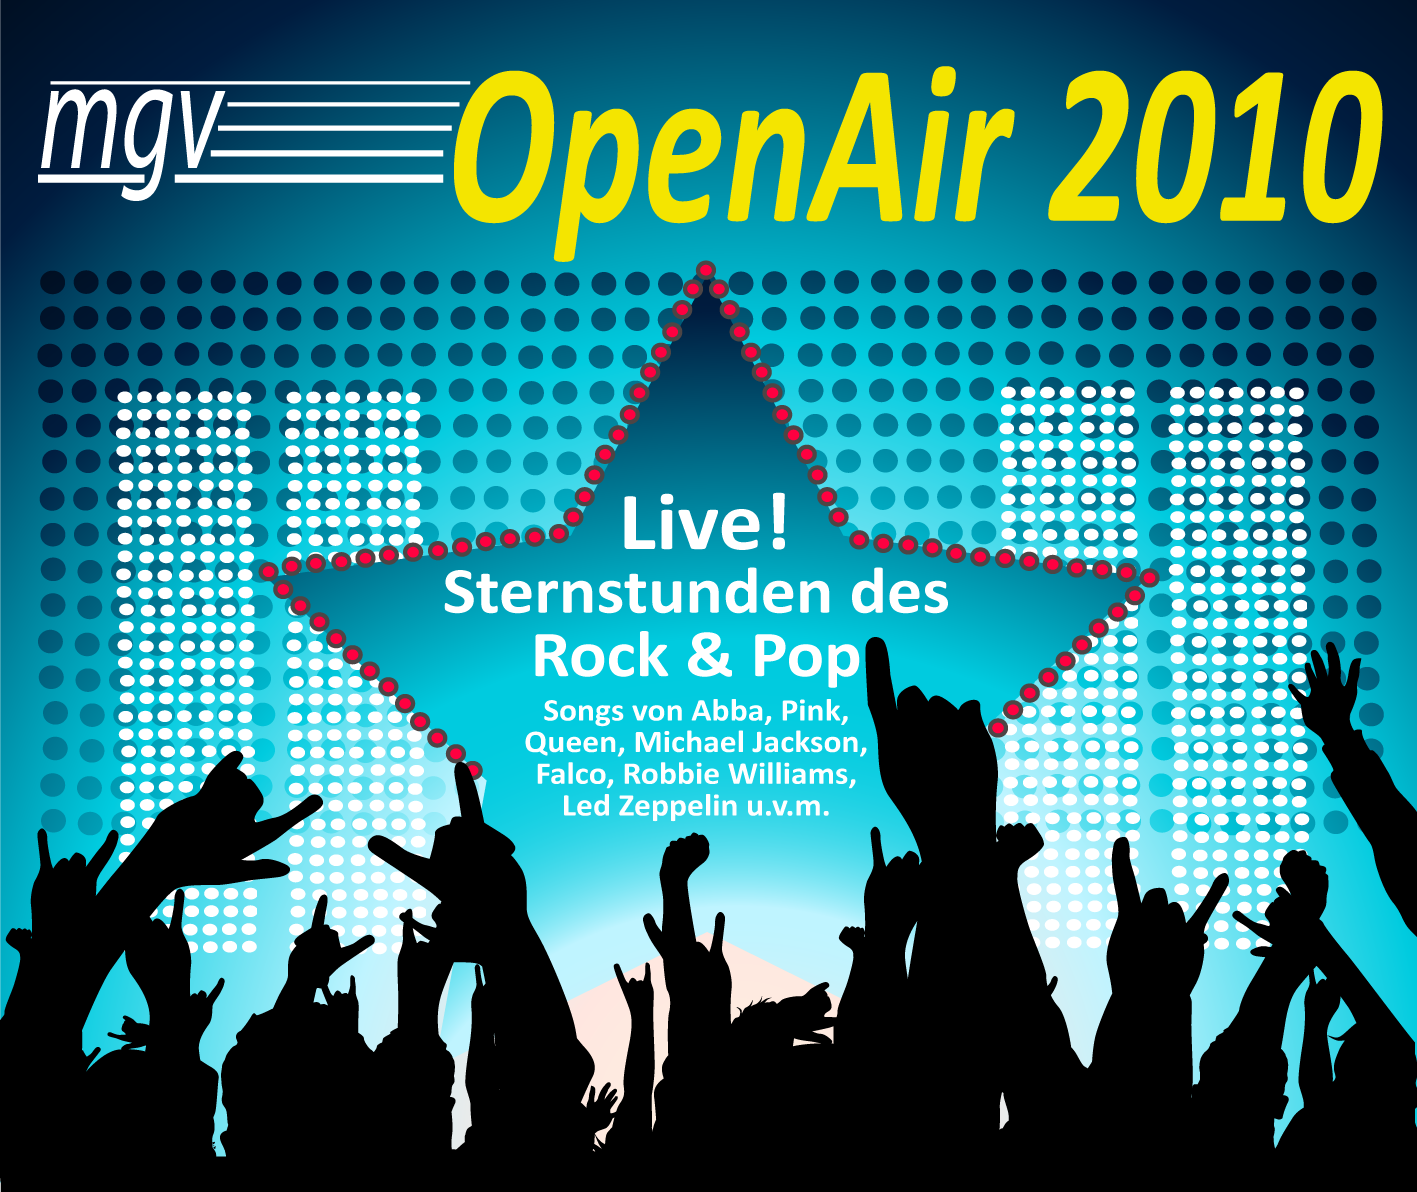 OpenAir2010_CD_Cover